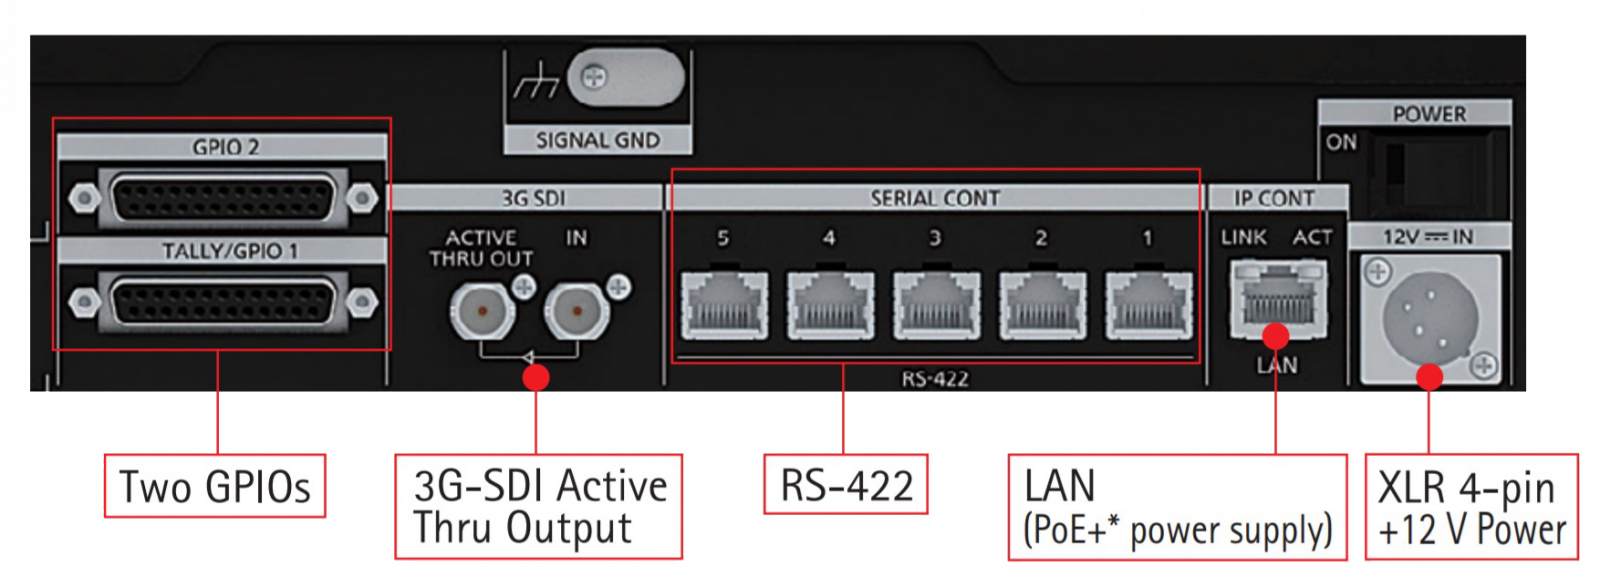 Panasonic AW-RP150 Connections